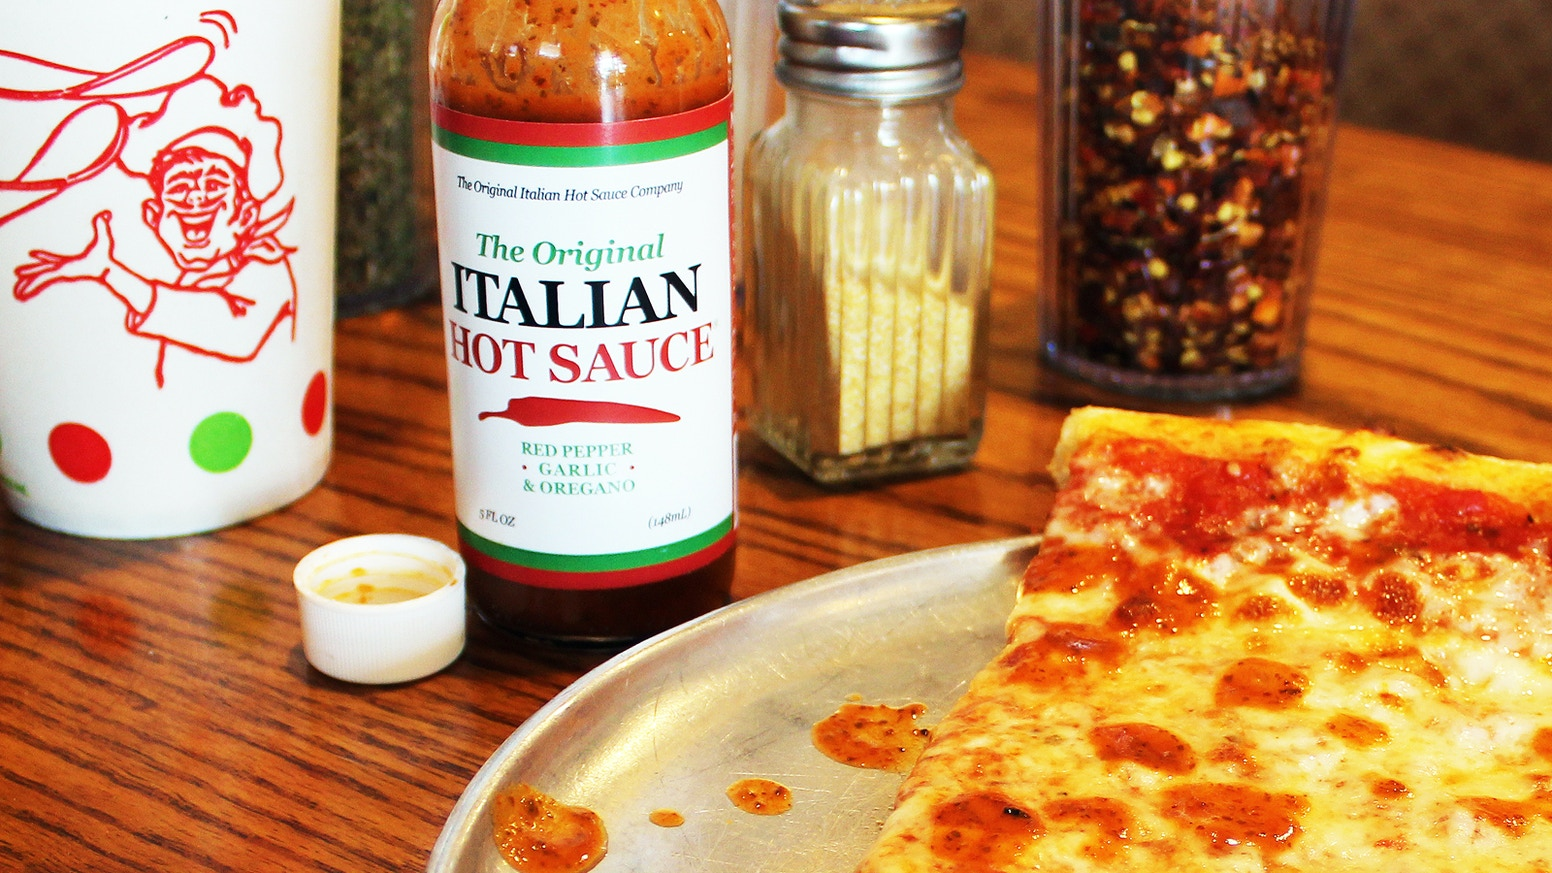 Enjoy the bold Italian flavors of red pepper, garlic, and oregano in our original hot sauce. Perfect on pizza, subs, wings, and more!